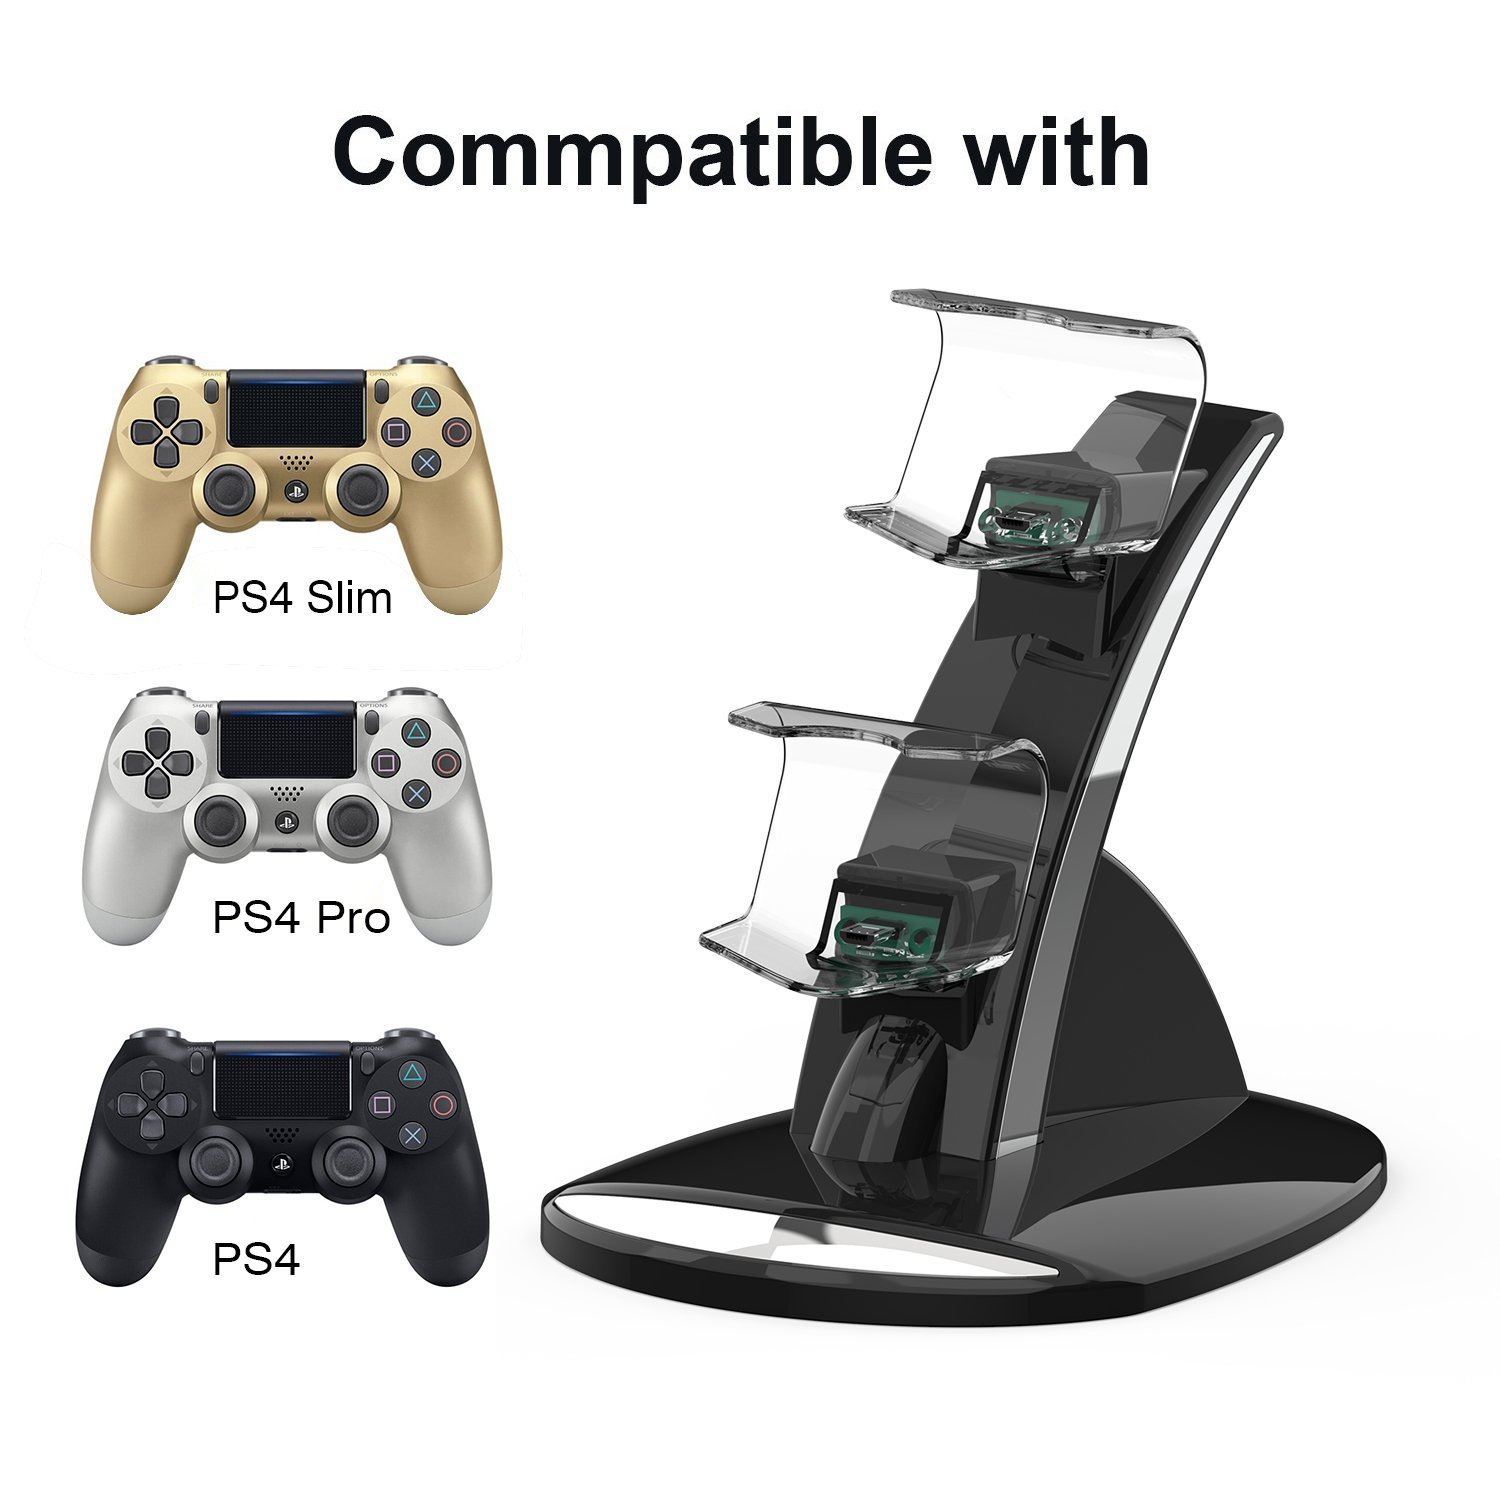 YCCTEAM Dual USB Charging Charger Docking Station Stand for Playstation 4 PS4,PS4 Slim,PS4 Pro Controller